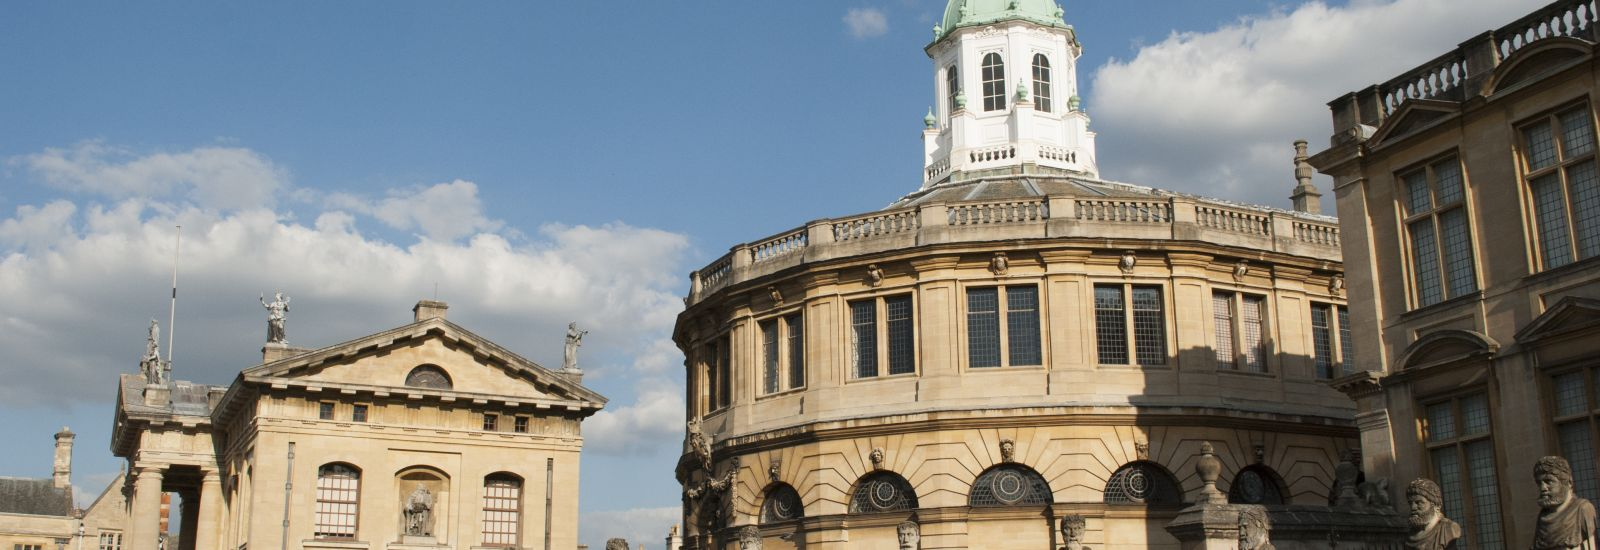 Oxford Sheldonian